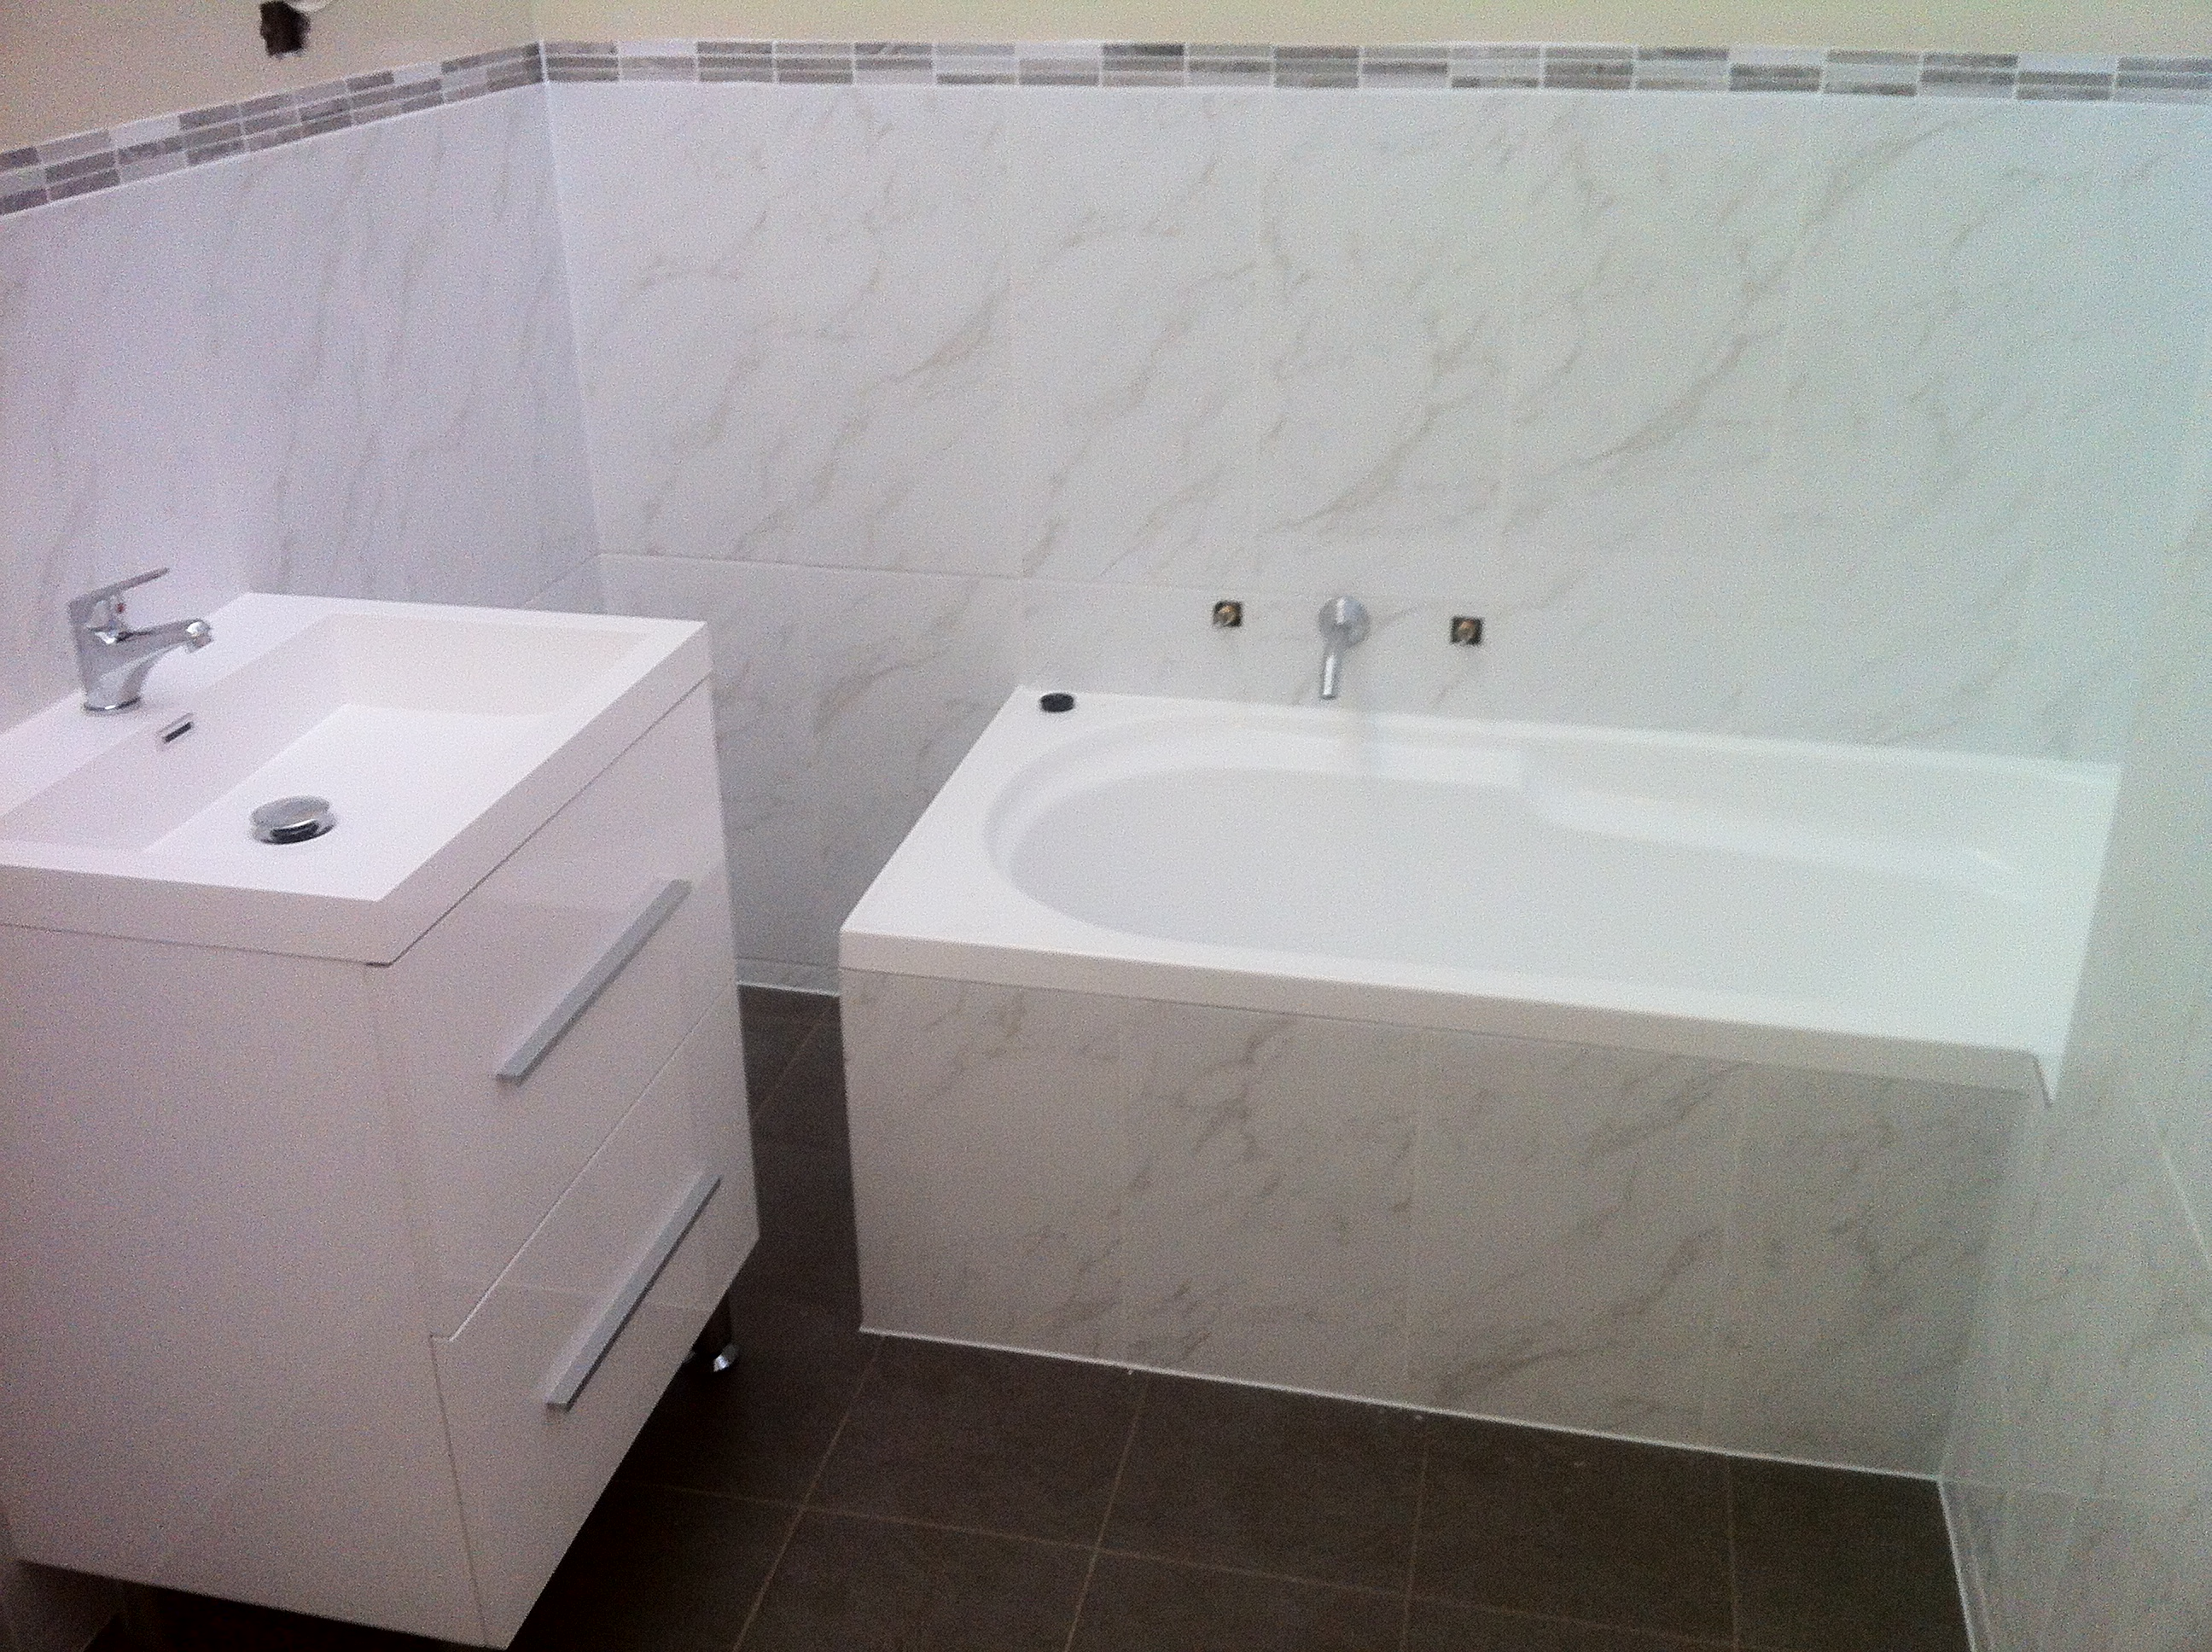 Bathroom Renovations Adelaide Reviews. Recently Completed Bathroom Renovation Great Contrast Of Colours And Mosaic Tile To Add A Feature To The Bathroom